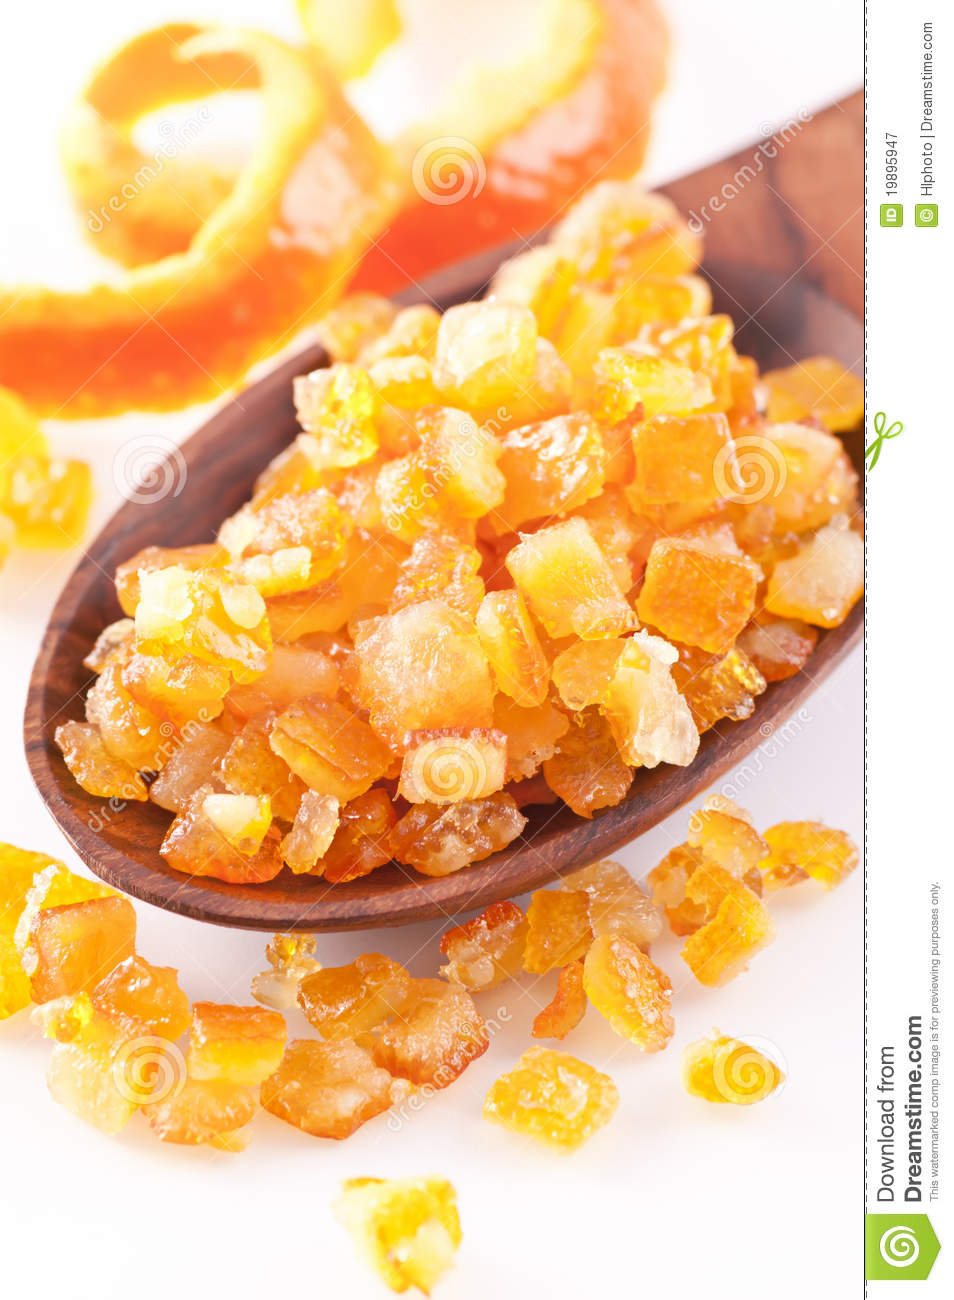 Candied Orange Peel Royalty Free Stock Photography.